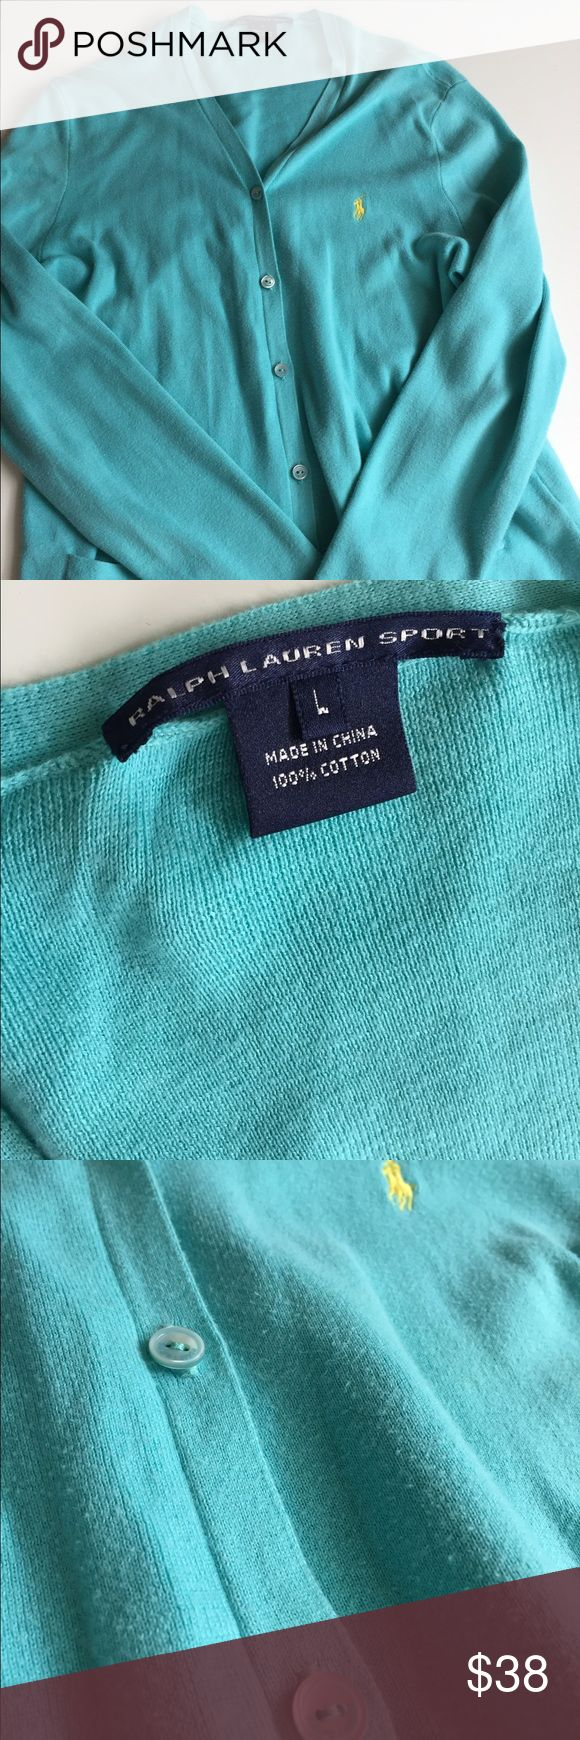 Ralph Lauren sport size large turquoise cardigan Ralph Lauren sport size large turquoise cardigan. Loved but still in great condition- up close of material shows what condition it's in. Ralph Lauren Sweaters Cardigans